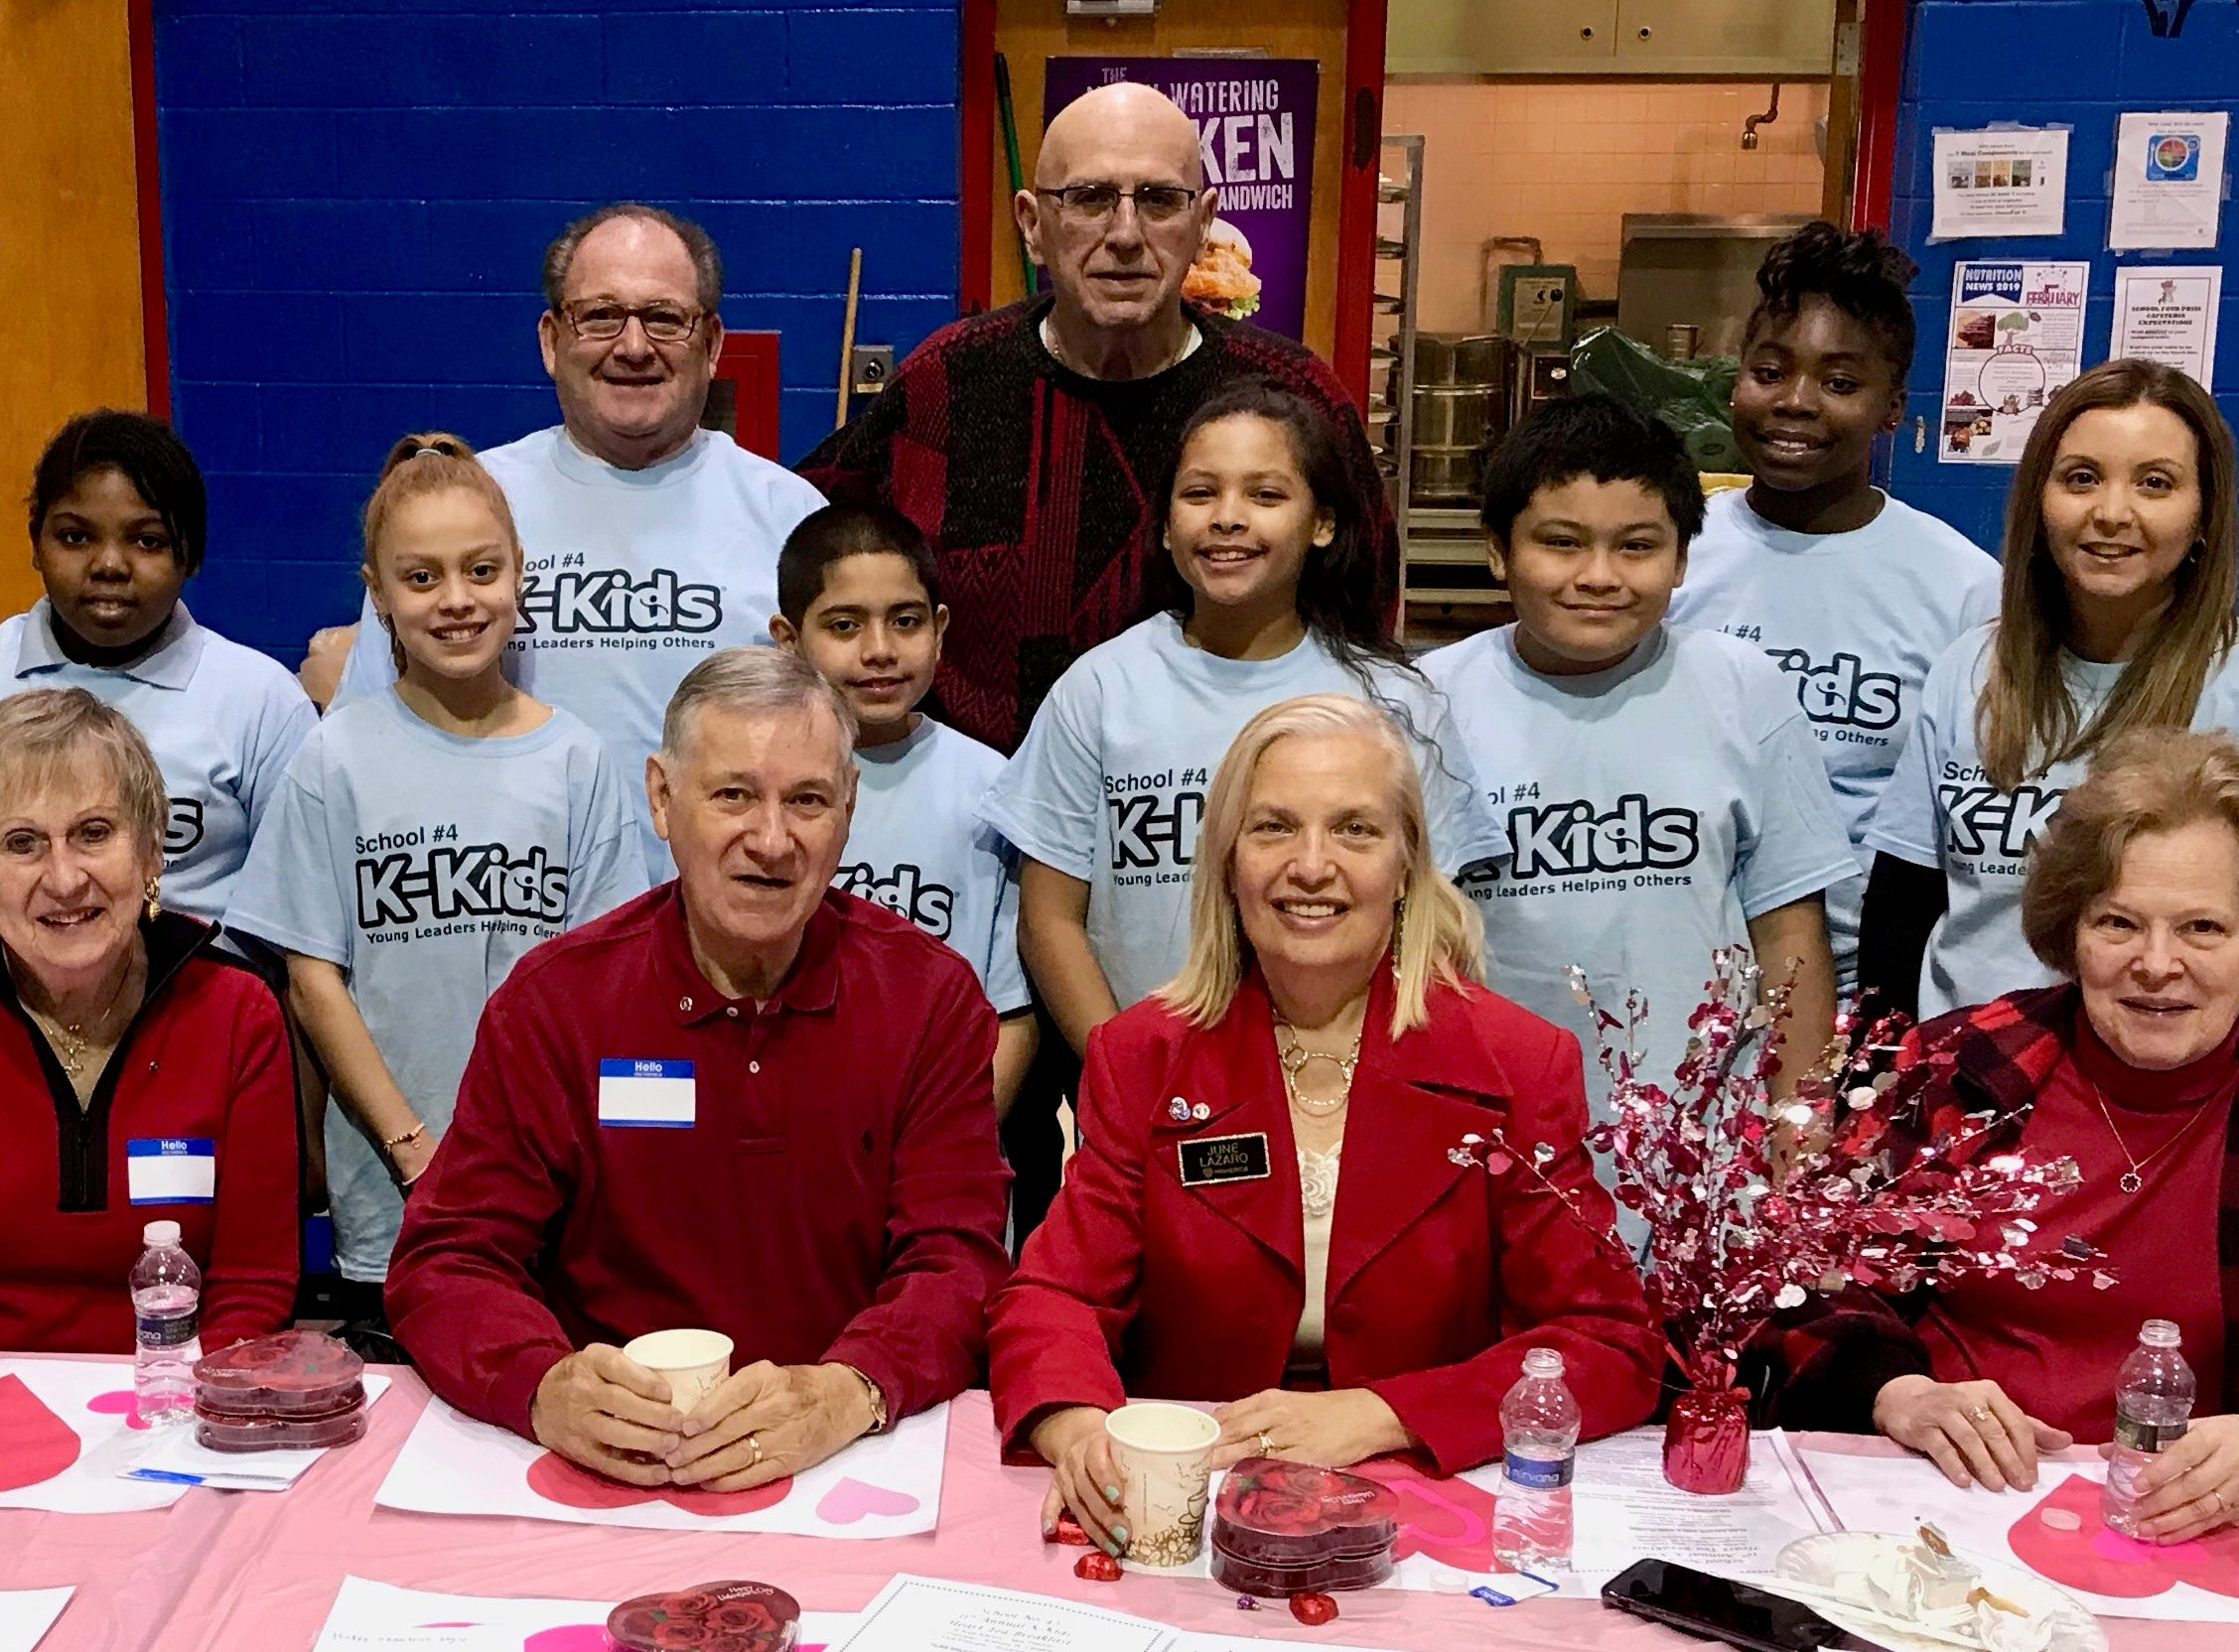 Heart3: Members of School No. 4's K-Kids, along with Principal Anthony Cataline and adviser Danielle Piscino, posing with members of the Linden Kiwanis Club, which sponsors the K-Kids.